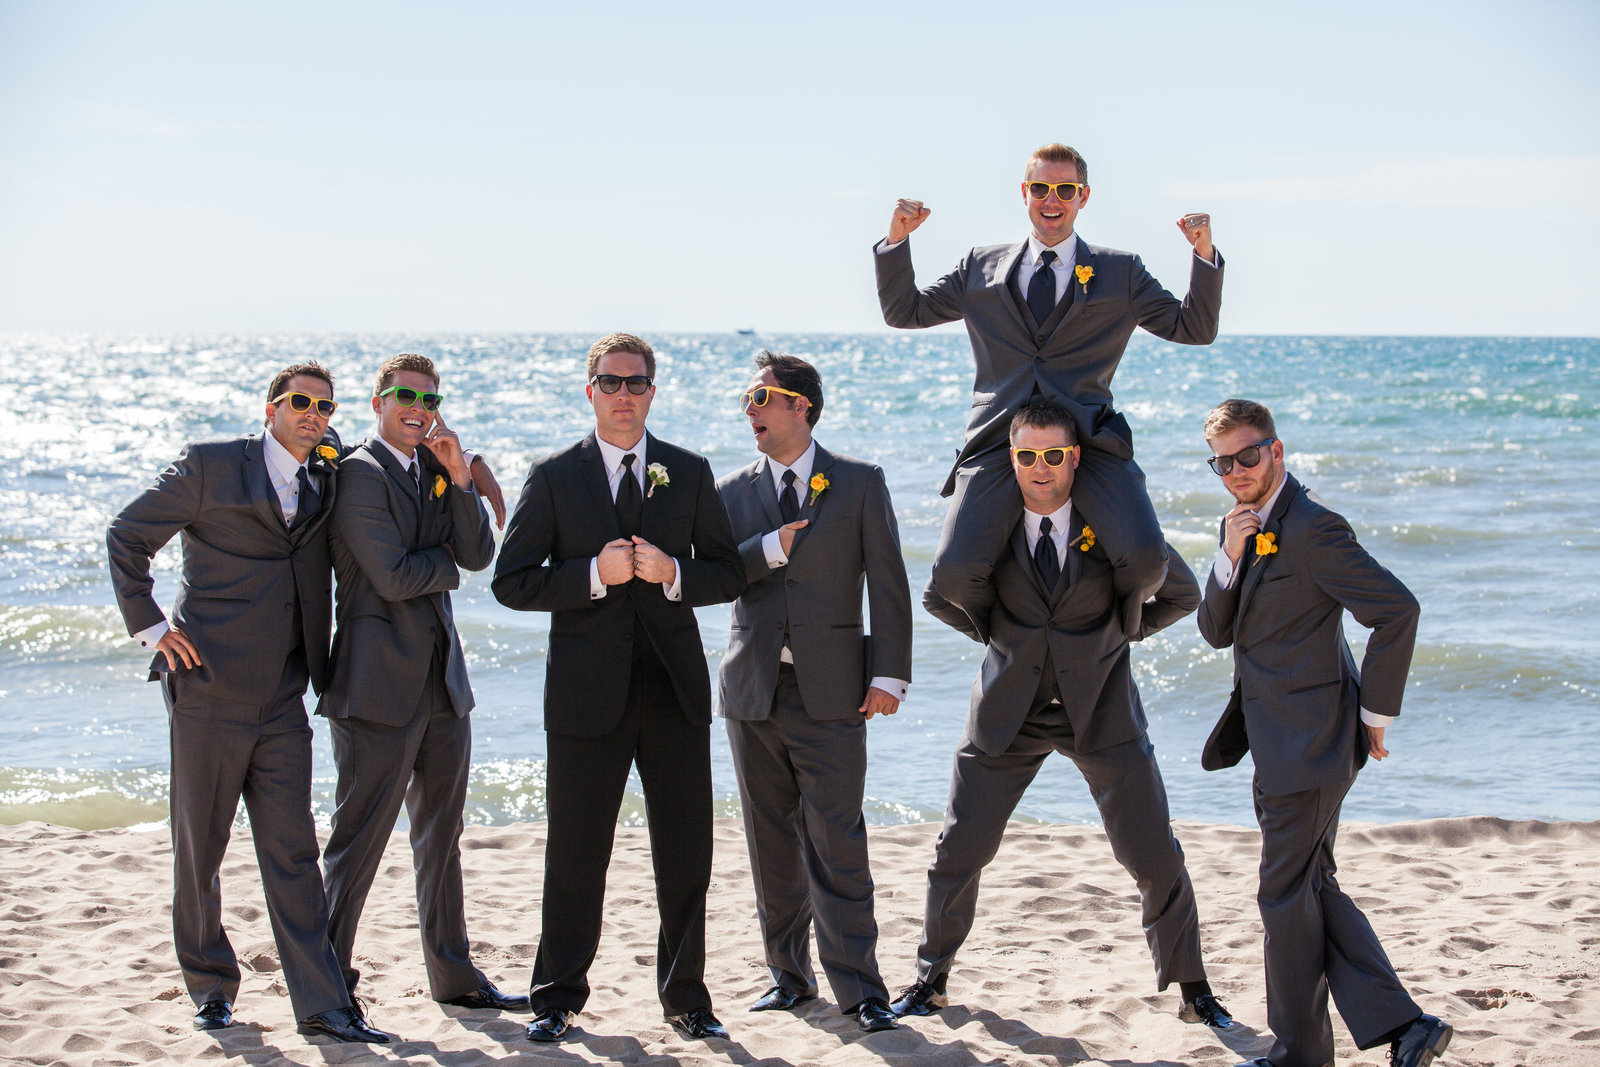 grand rapids wedding photographers 10455